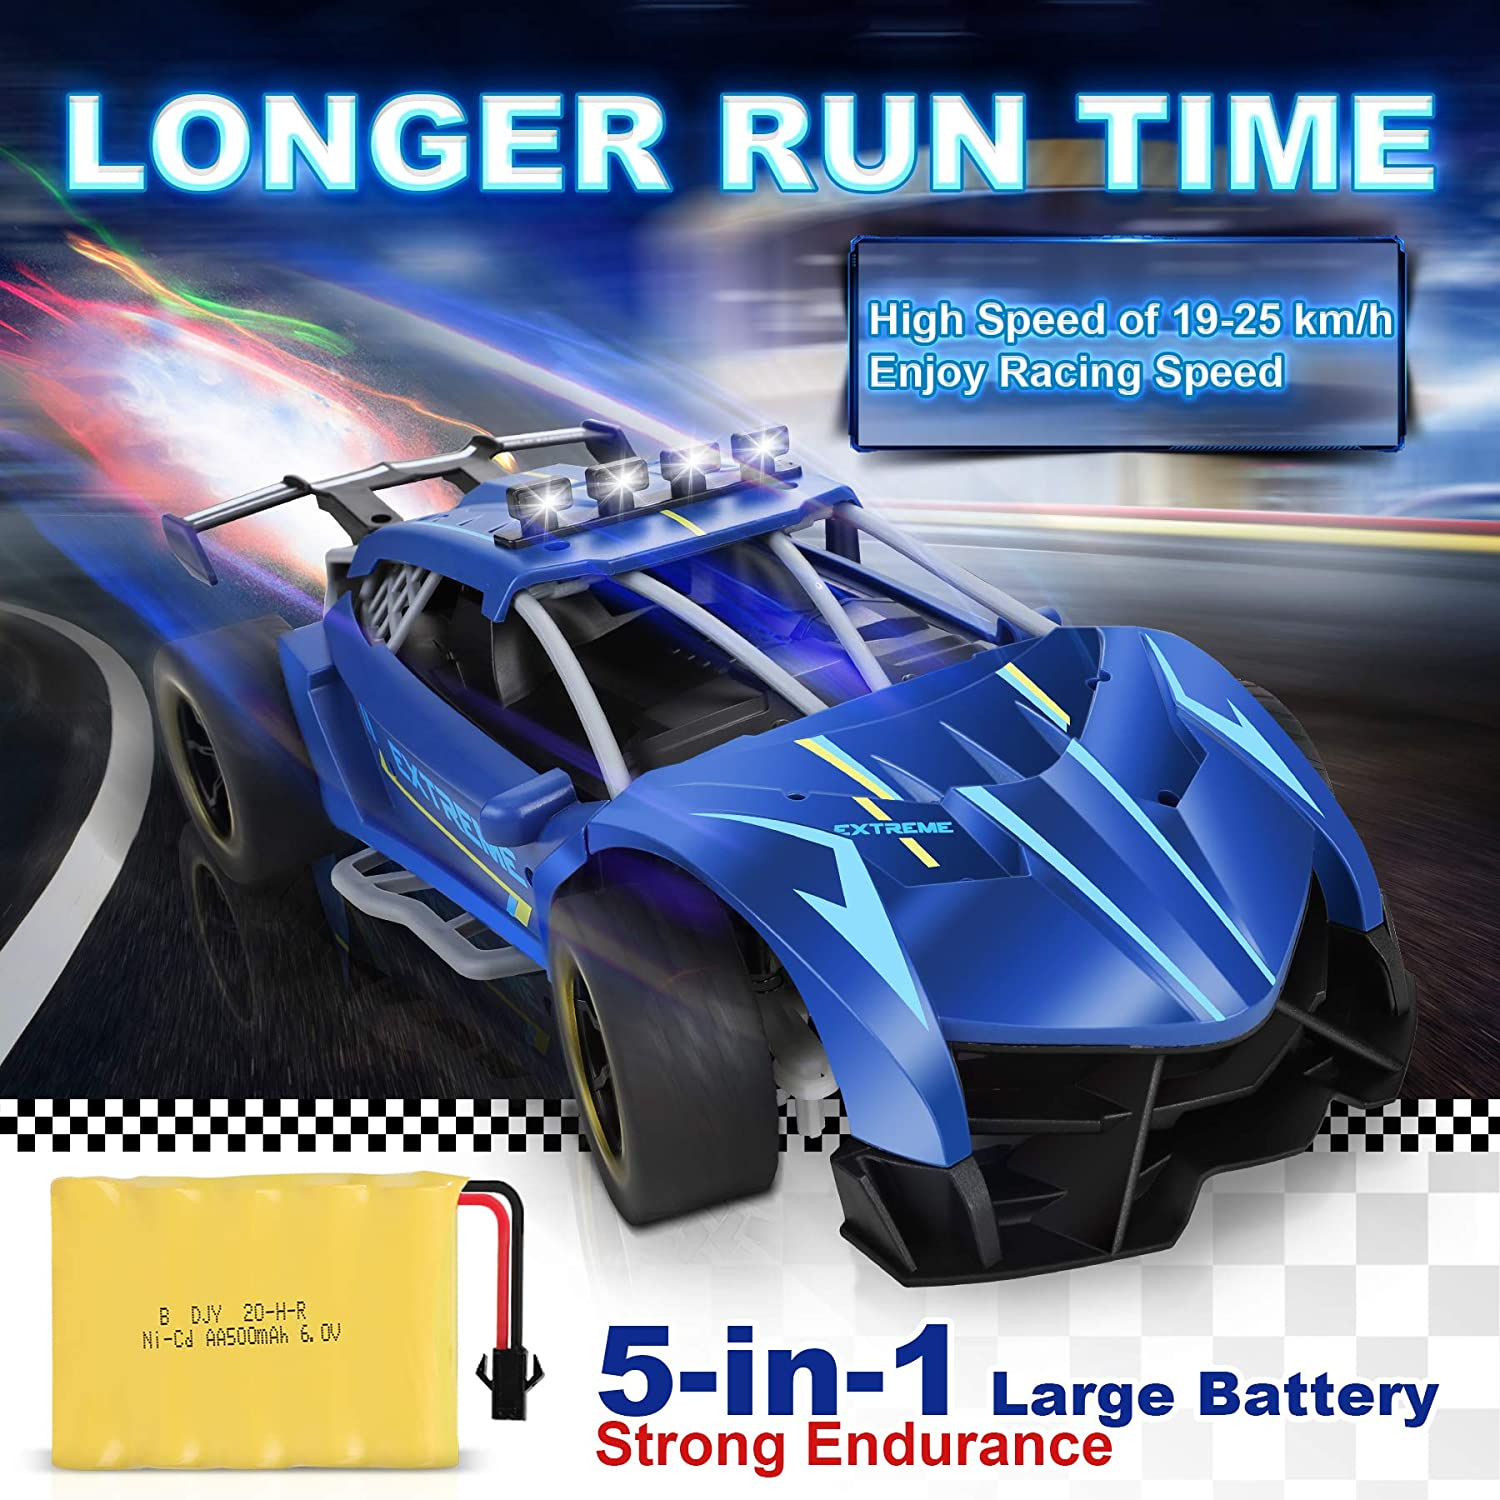 RC Cars 1:12 Scale Sports Car with Awesome Rear Fog Stream /& LED Lighting Spray 4WD Off Road Rock Crawler High Speed 25 Km//h Racing RC Car Toys with Rechargeable Battery All Terrain